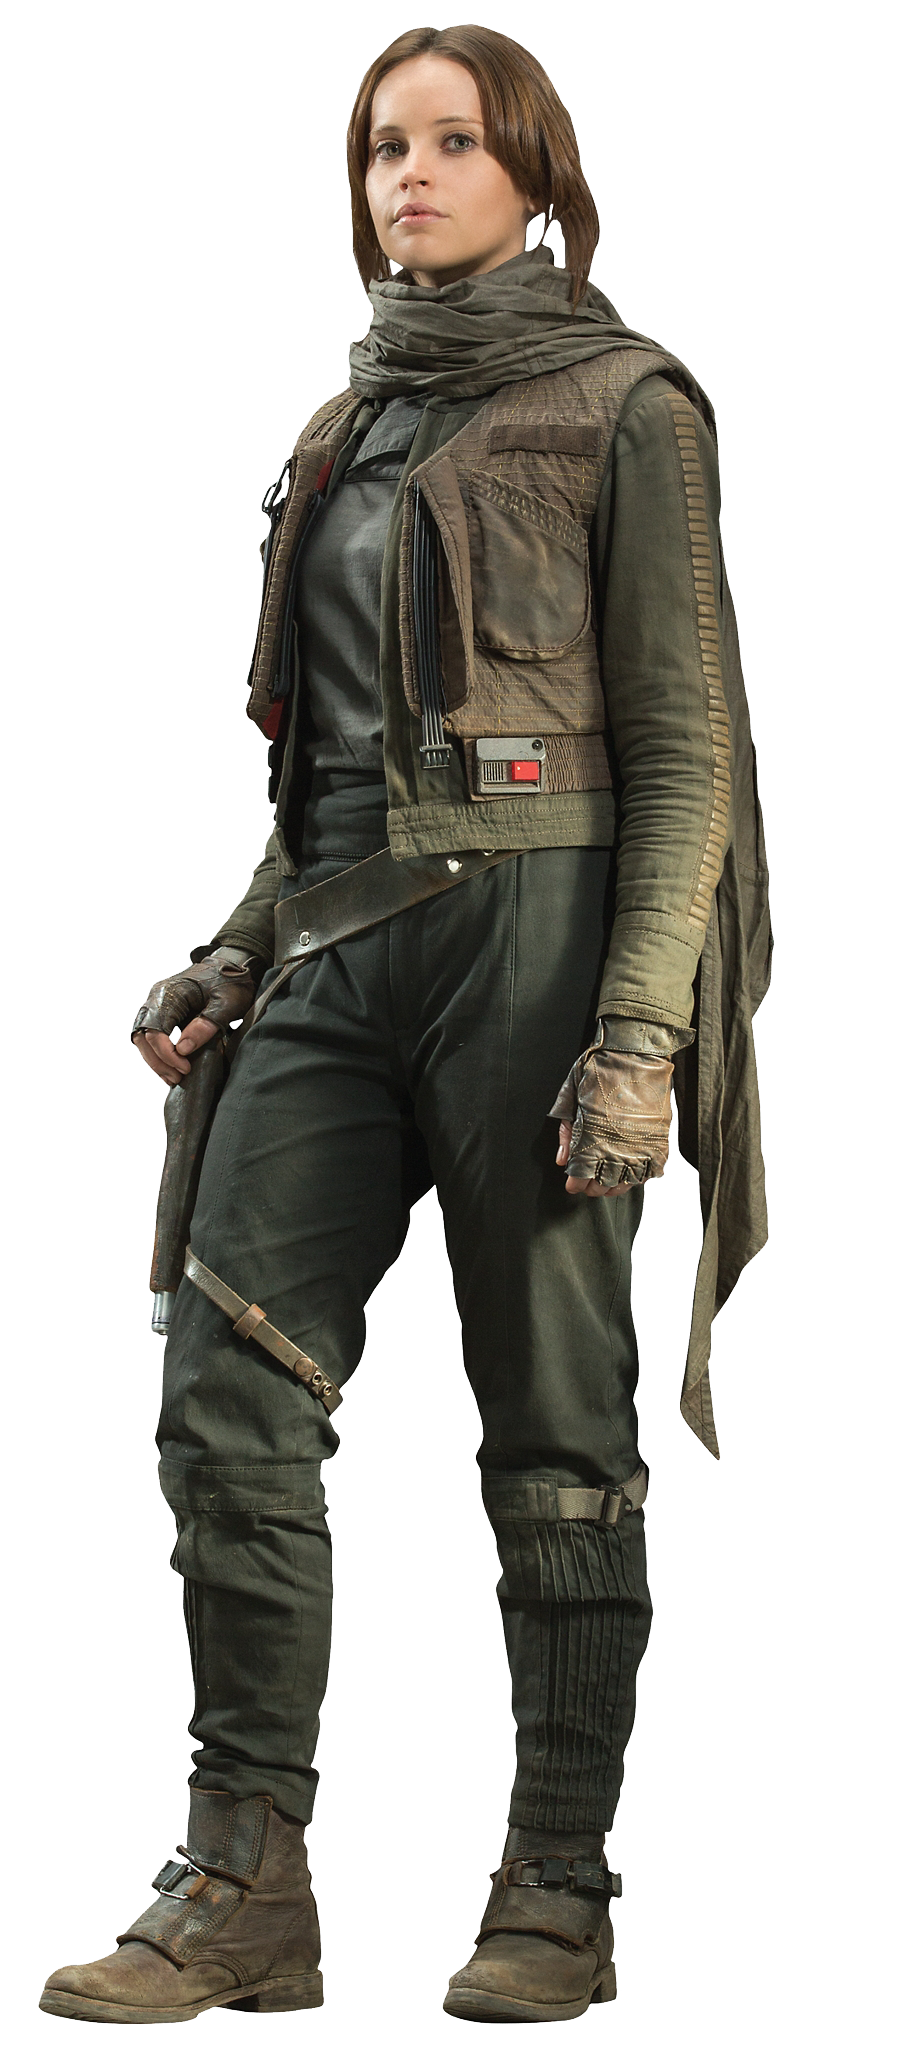 Jyn Erso is the protagonist of the Star Wars film 64546619e7035